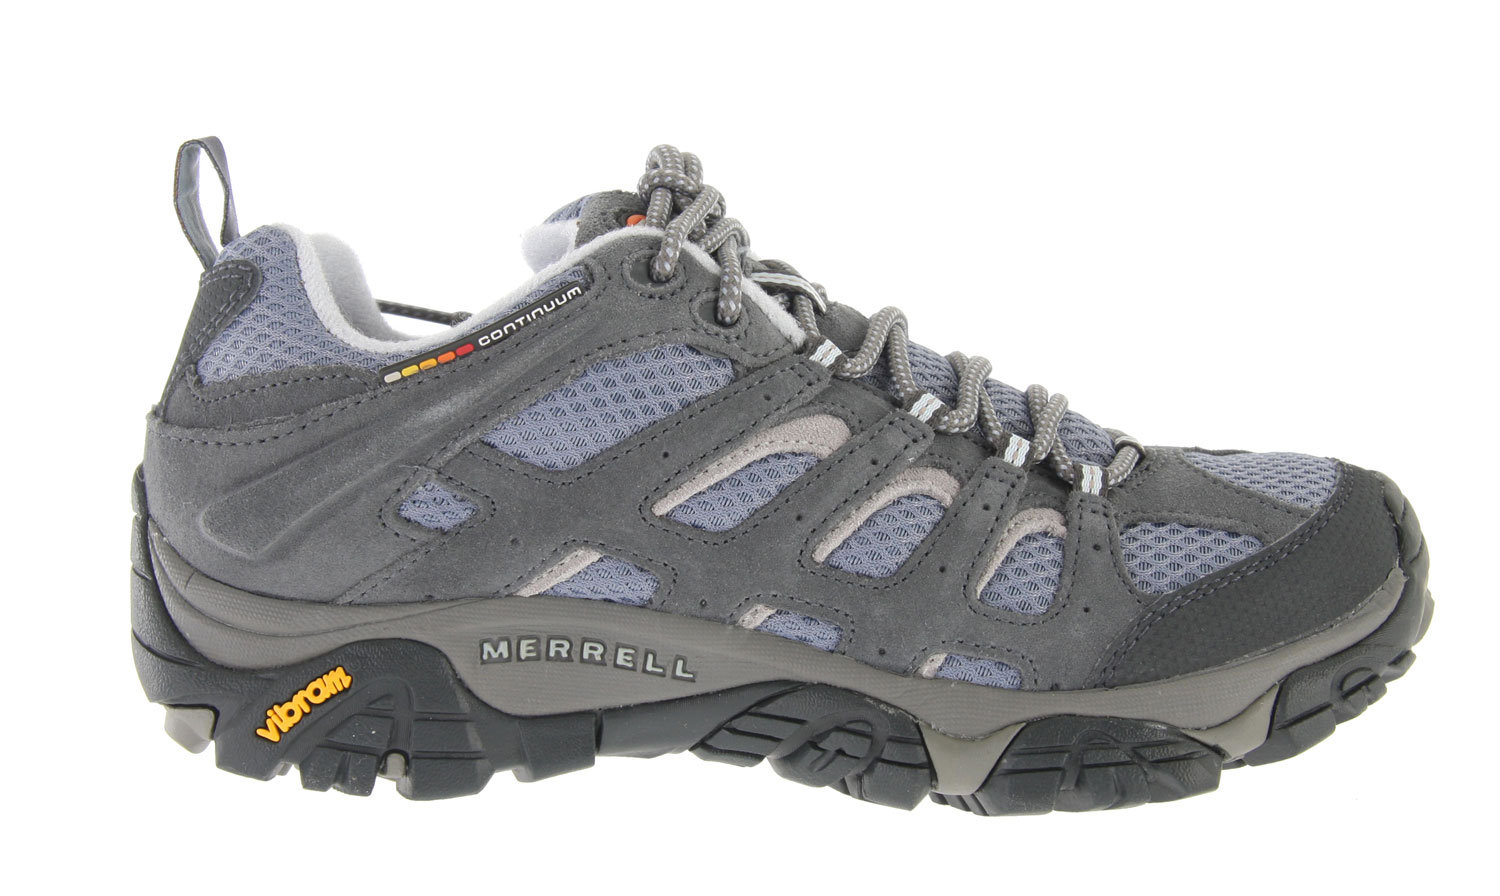 Camp and Hike Merrell's endless summer essential hiking shoe now with highly evolved breathability for hiking or biking the trails. The Moab Ventilator Low Hiking Shoe has a lattice-like overlay of Dura leather strapping supports and protects while enhancing the open-window venting of the breathable mesh upper that is a Merrell mark. Full bumper protection at the toe and around the heel Proven Vibram Multi-Sport sole with TC5+ rubber compound for grip and durability. Key Features of the Merrell Moab Ventilator Low Hiking Shoes: Dura leather and mesh upper Bellows tongue keeps debris out Synthetic leather toe cap and heel counter Breathable mesh lining treated with Aegis Antimicrobial solution Ortholite Anatomical Footbed Molded nylon arch shank Compression molded EVA footframe provides cushioning Merrell air cushion in the heel absorbs shock and adds stability QForm Comfort midsole provides women's specific stride-sequenced cushioning 5mm Sole lug depth Vibram Multi-Sport Sole/TC5+ Rubber Weight: 1 lb 13 ozs. - $54.95